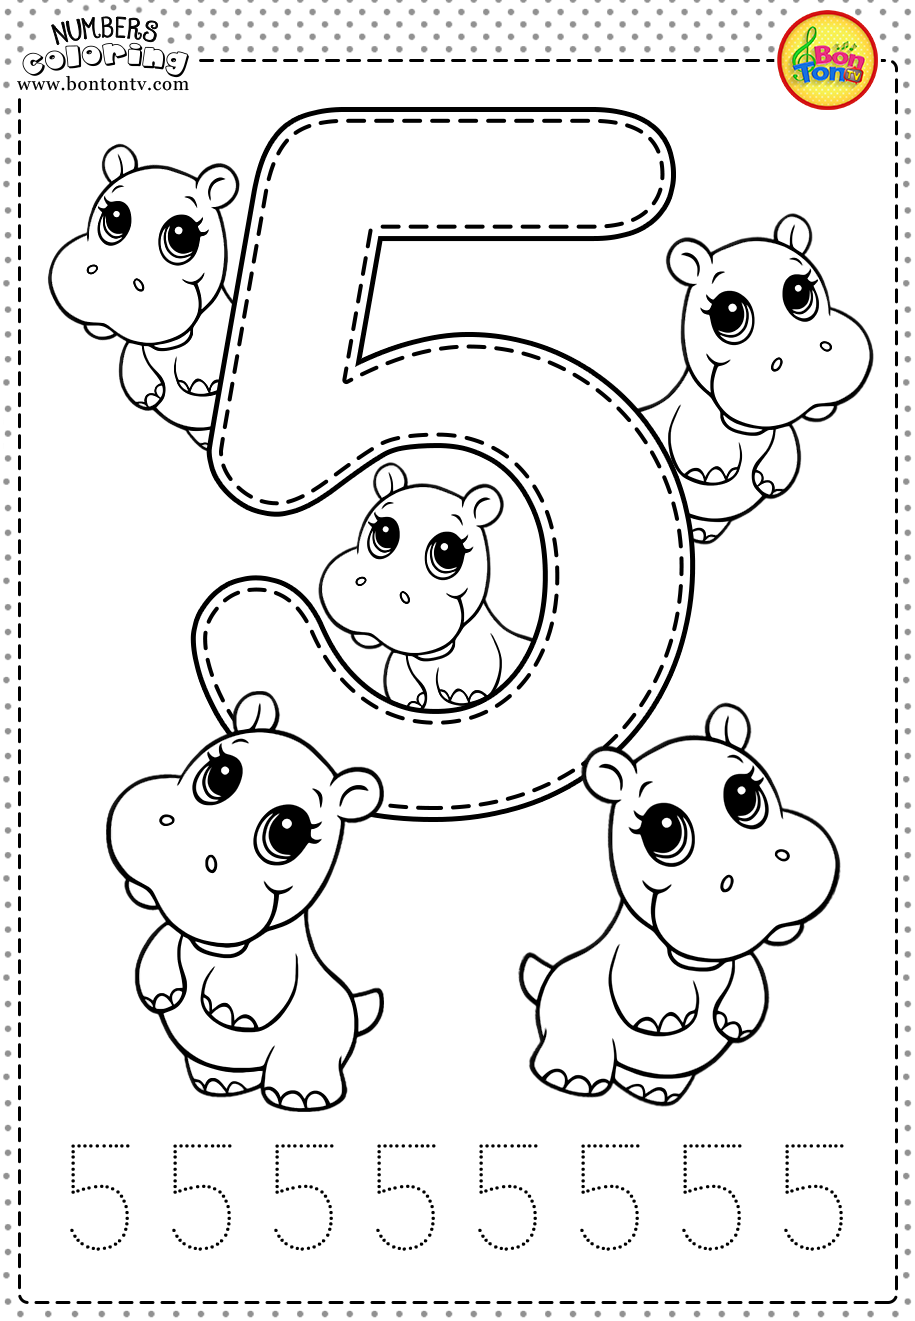 Number 5 Preschool Printables Free Worksheets And Coloring Pages For Kids Le Planilhas Pre Escolares Numeros De Aprendizagem Tarefas Do Jardim De Infancia